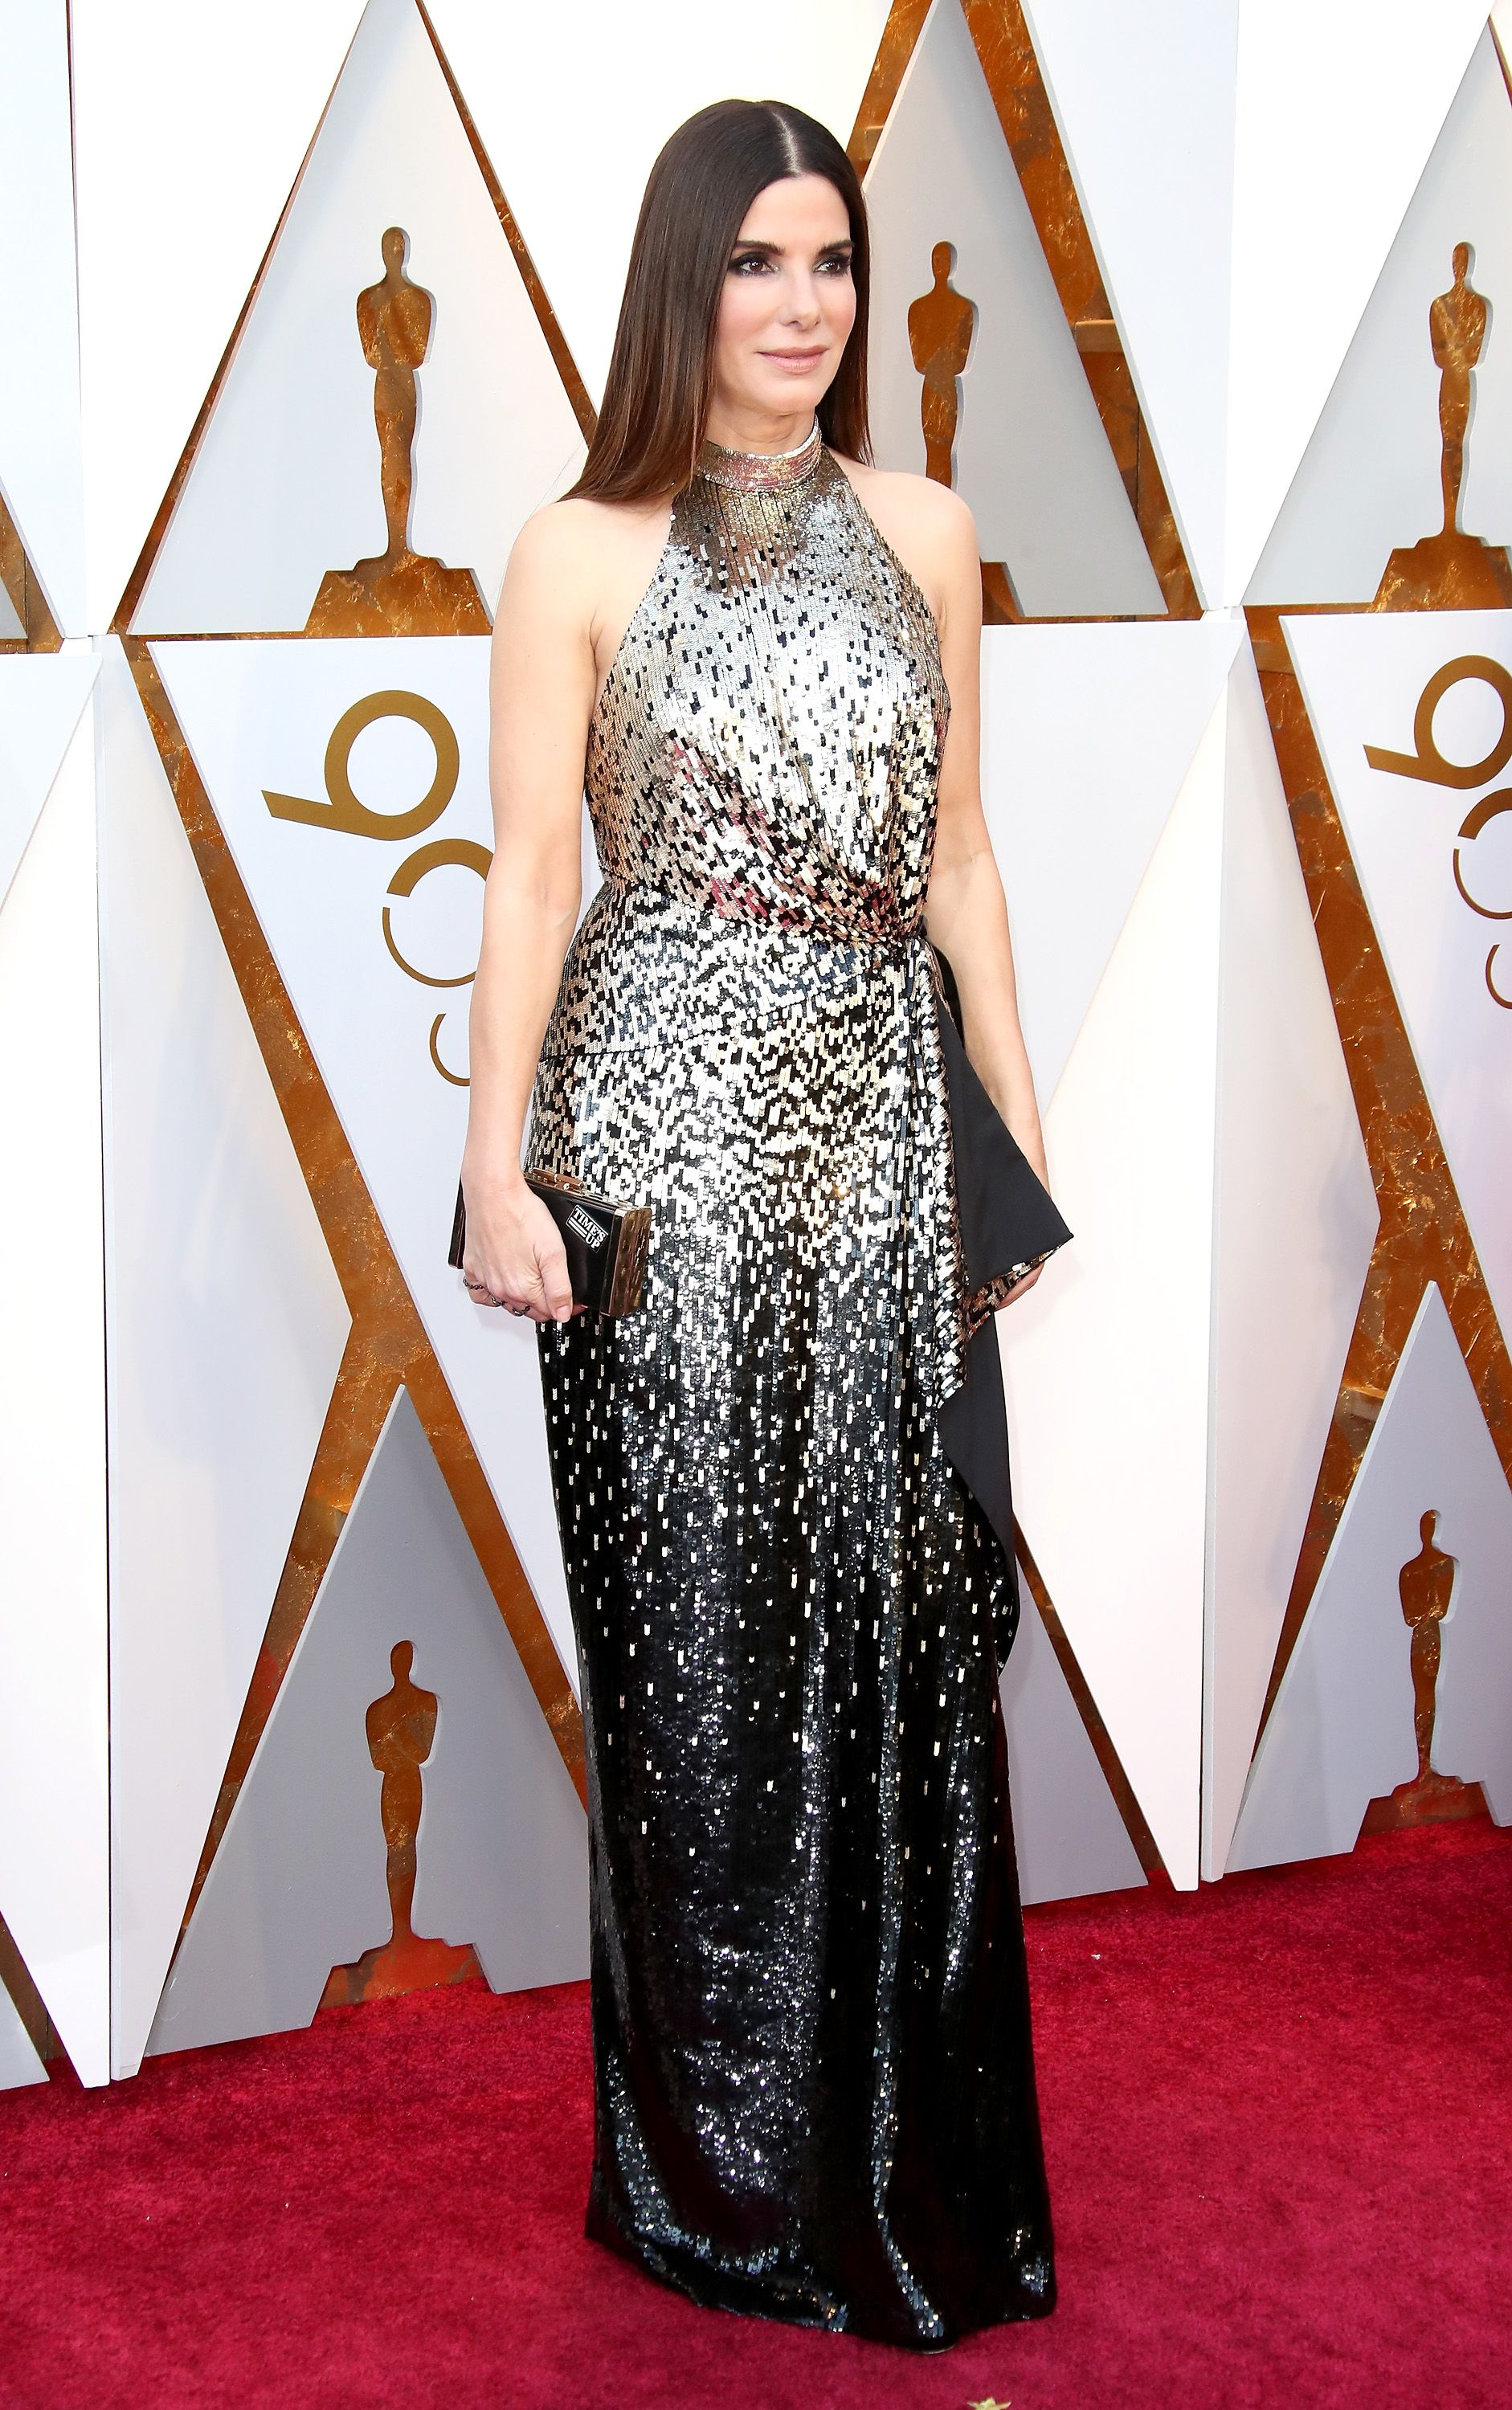 Bullock donned a high-neck, silk Louis Vuitton halter gown with gold and black sequins at the 2018 Oscar Awards.